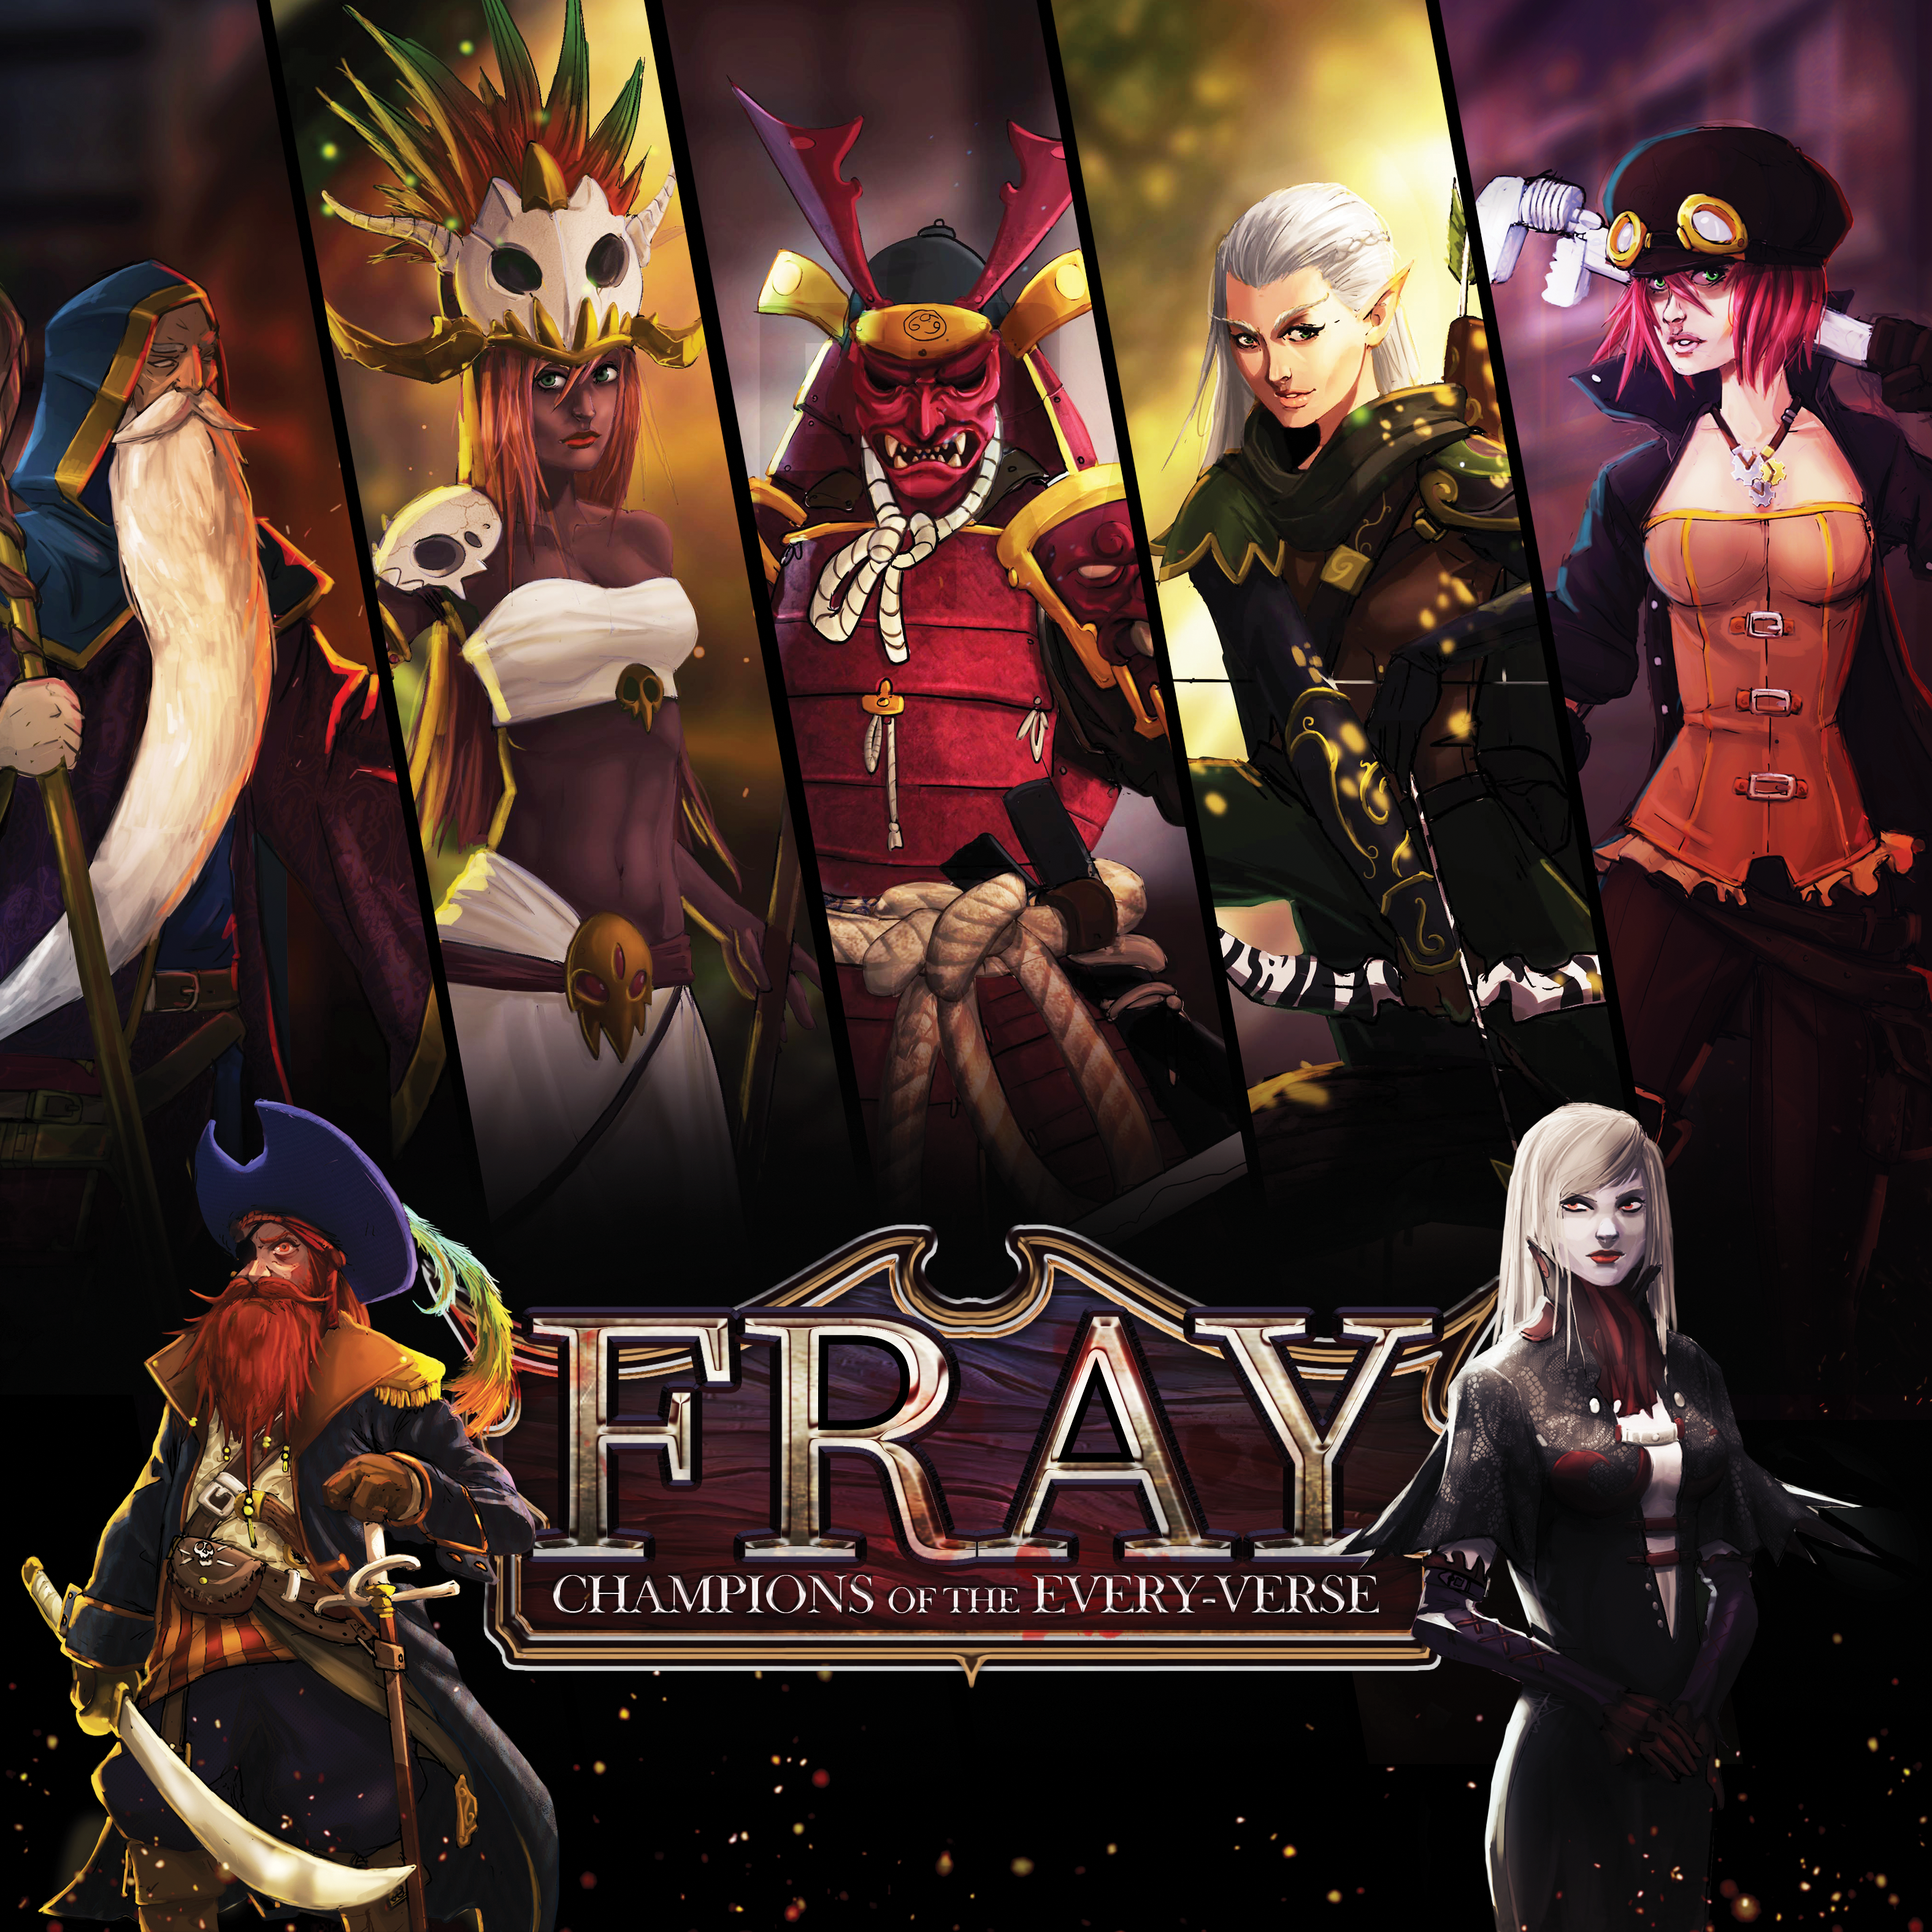 Fray: Champions of the Every-Verse